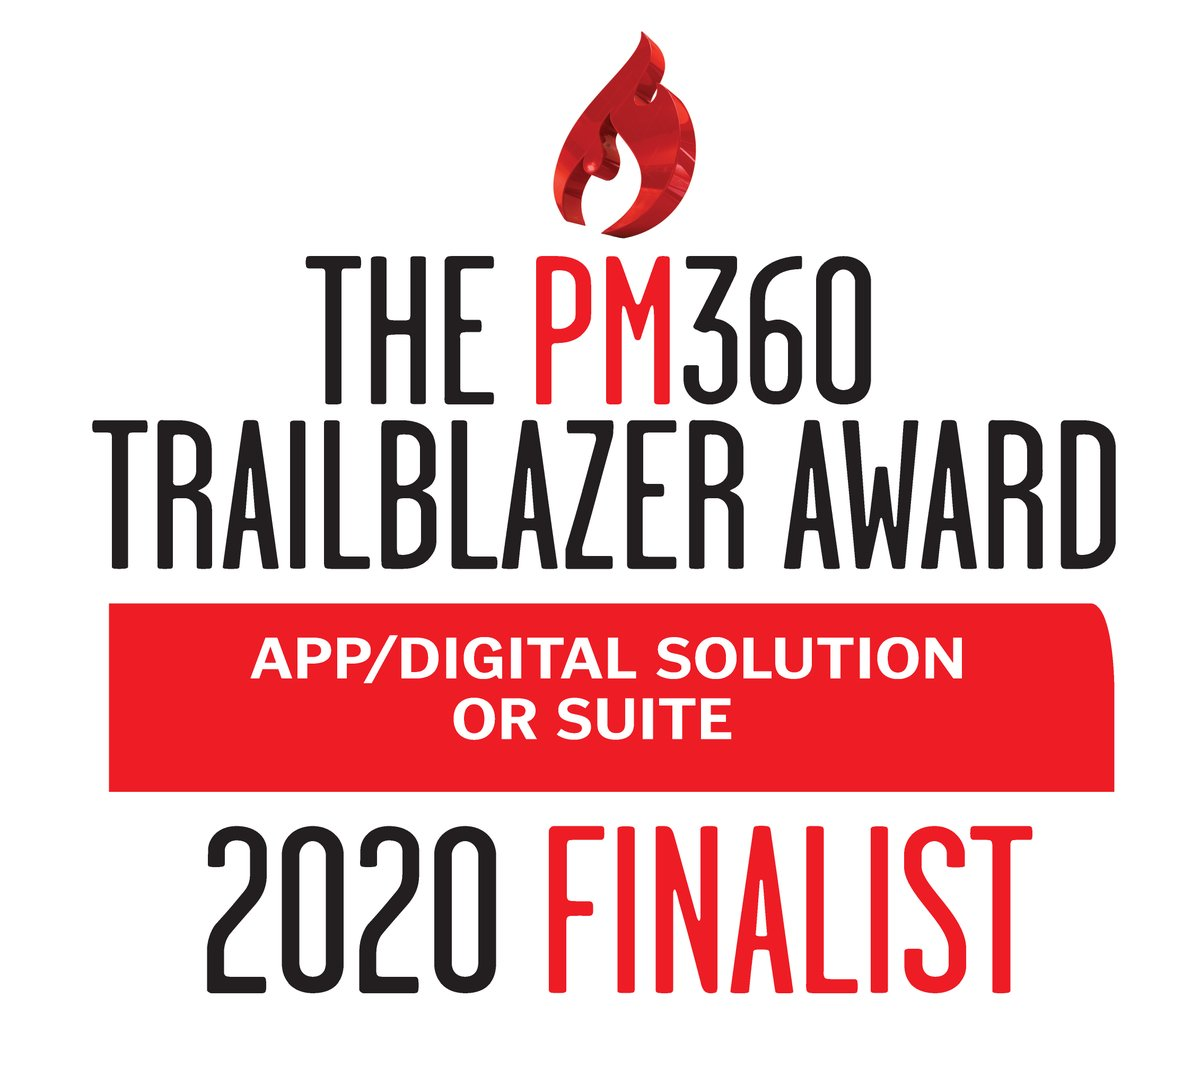 Outstanding initiatives hit the #pharmaceutical market in 2020! We are proud to be nominated in the two categories for #PM360TrailblazerAwards: INITIATIVE: APP/DIGITAL SOLUTION OR SUITE and the COMPANY OF THE YEAR: ADVERTISING AGENCY  https://t.co/cLASx1dBwx https://t.co/KMcUYhdmt3